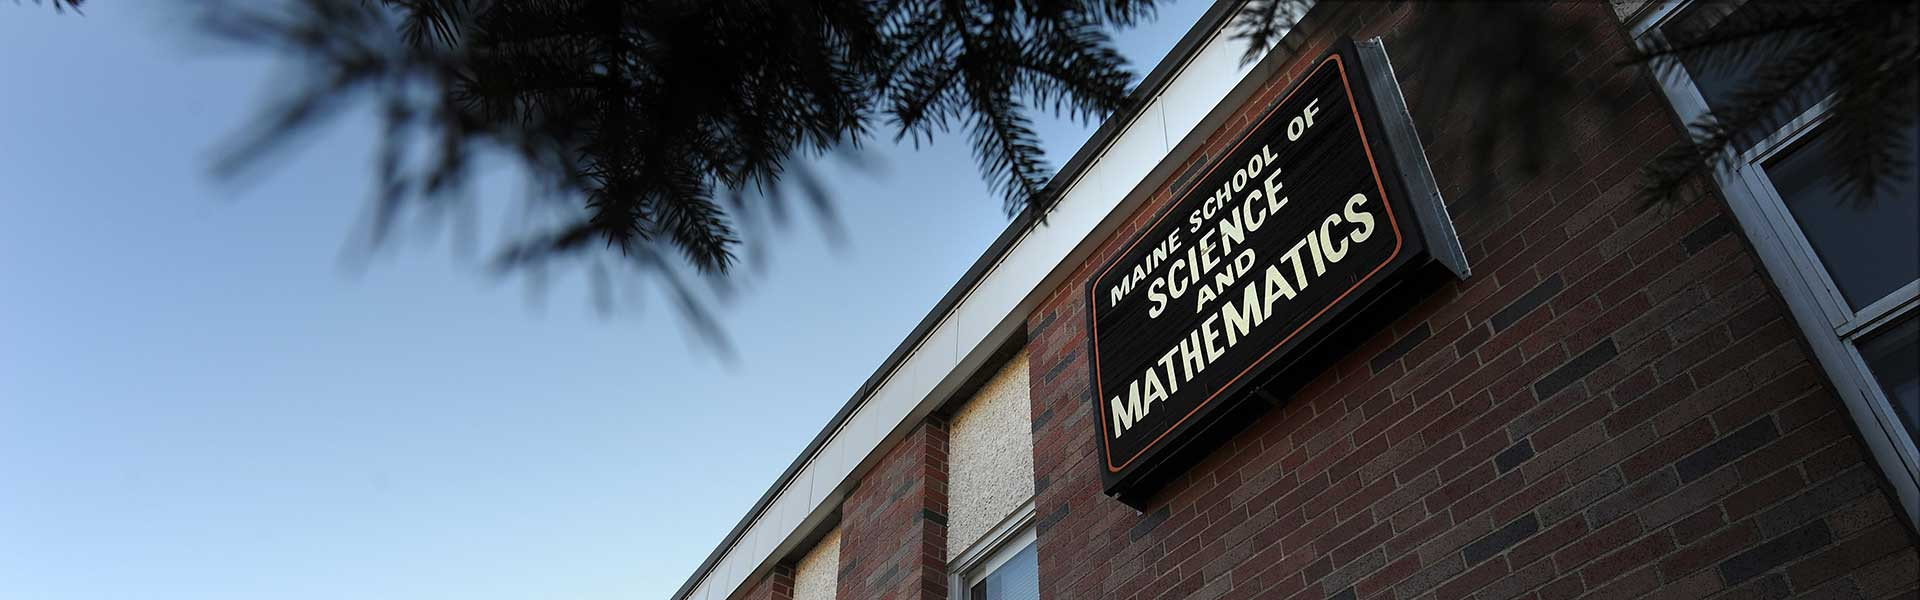 Maine School of Science and Mathematics in Maine USA